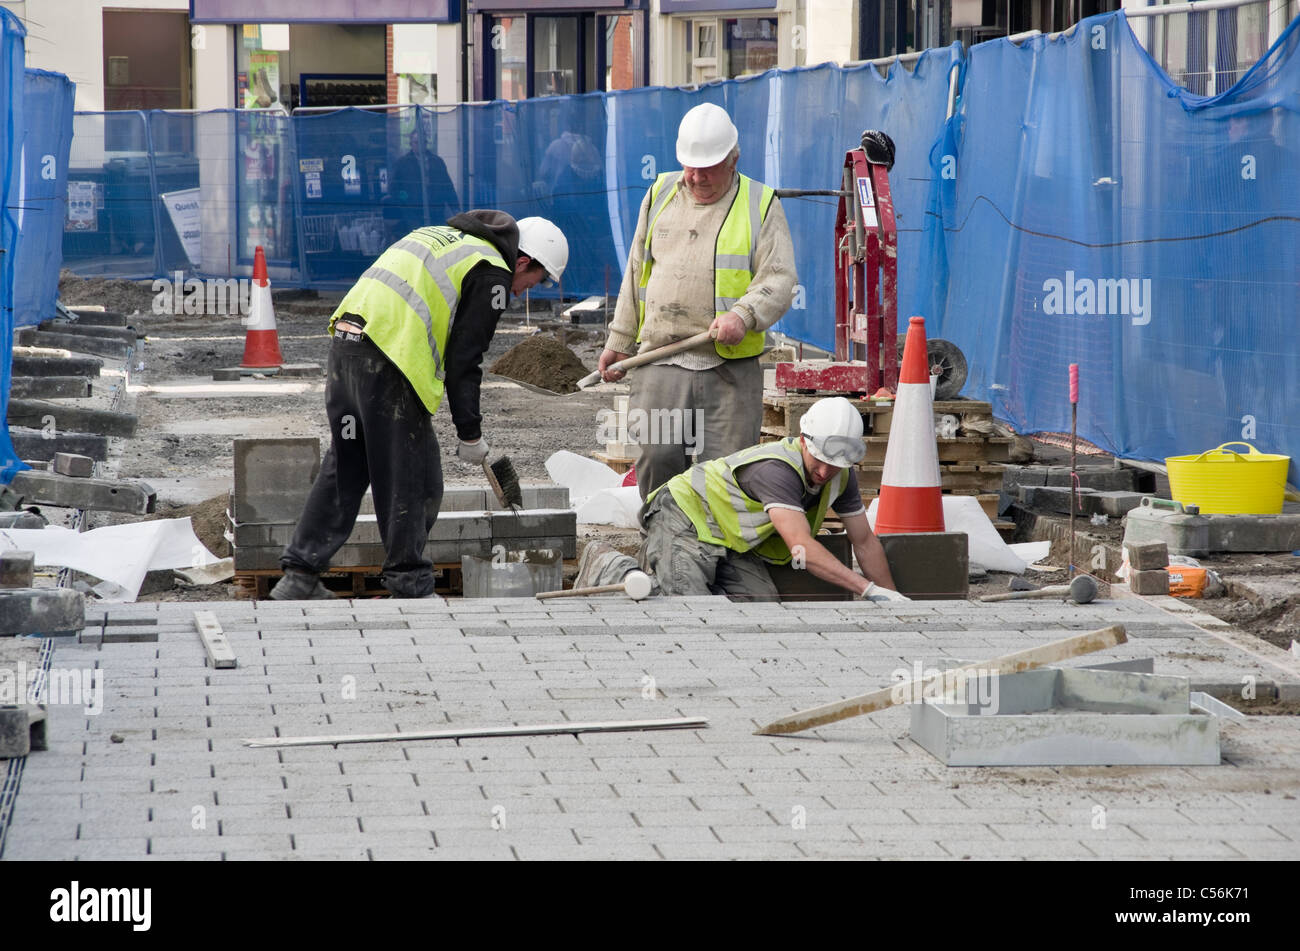 High Street, Bangor, Gwynedd, North Wales, UK. Council workmen digging up the road replacing paving stones in the - Stock Image